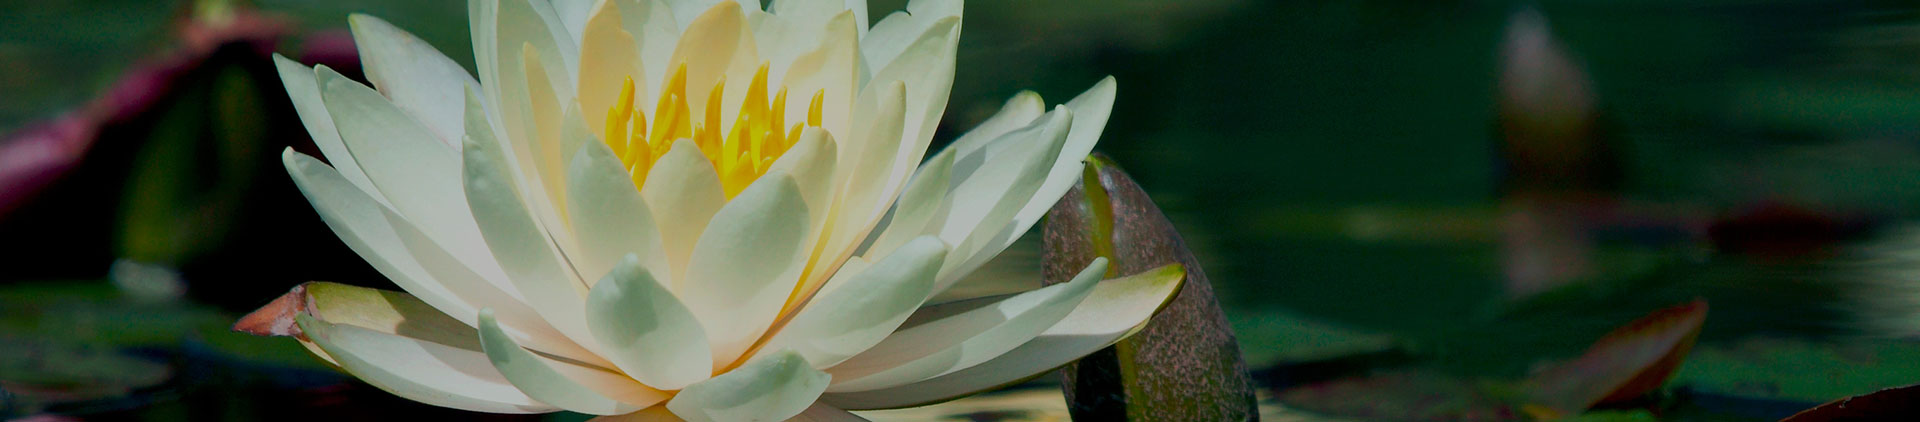 Resources | Jowett Funeral Home and Cremation Service